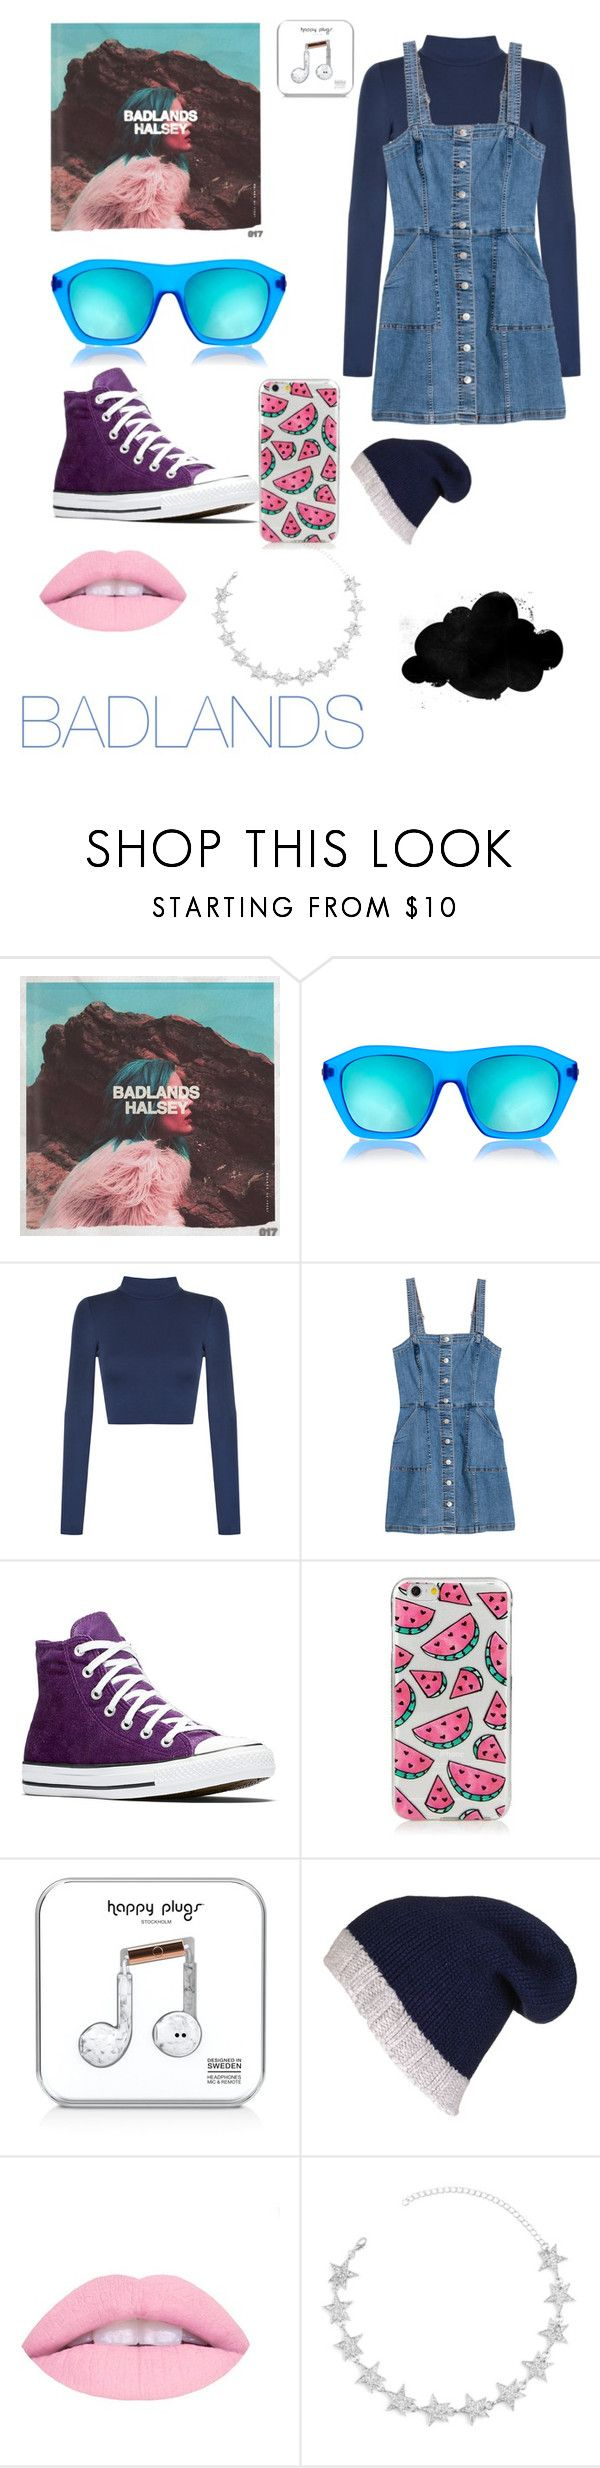 """halsey badlands inspired"" by ilanaszarf ❤ liked on Polyvore featuring Baker & Taylor, Le Specs, WearAll, Converse, Happy Plugs and Black"